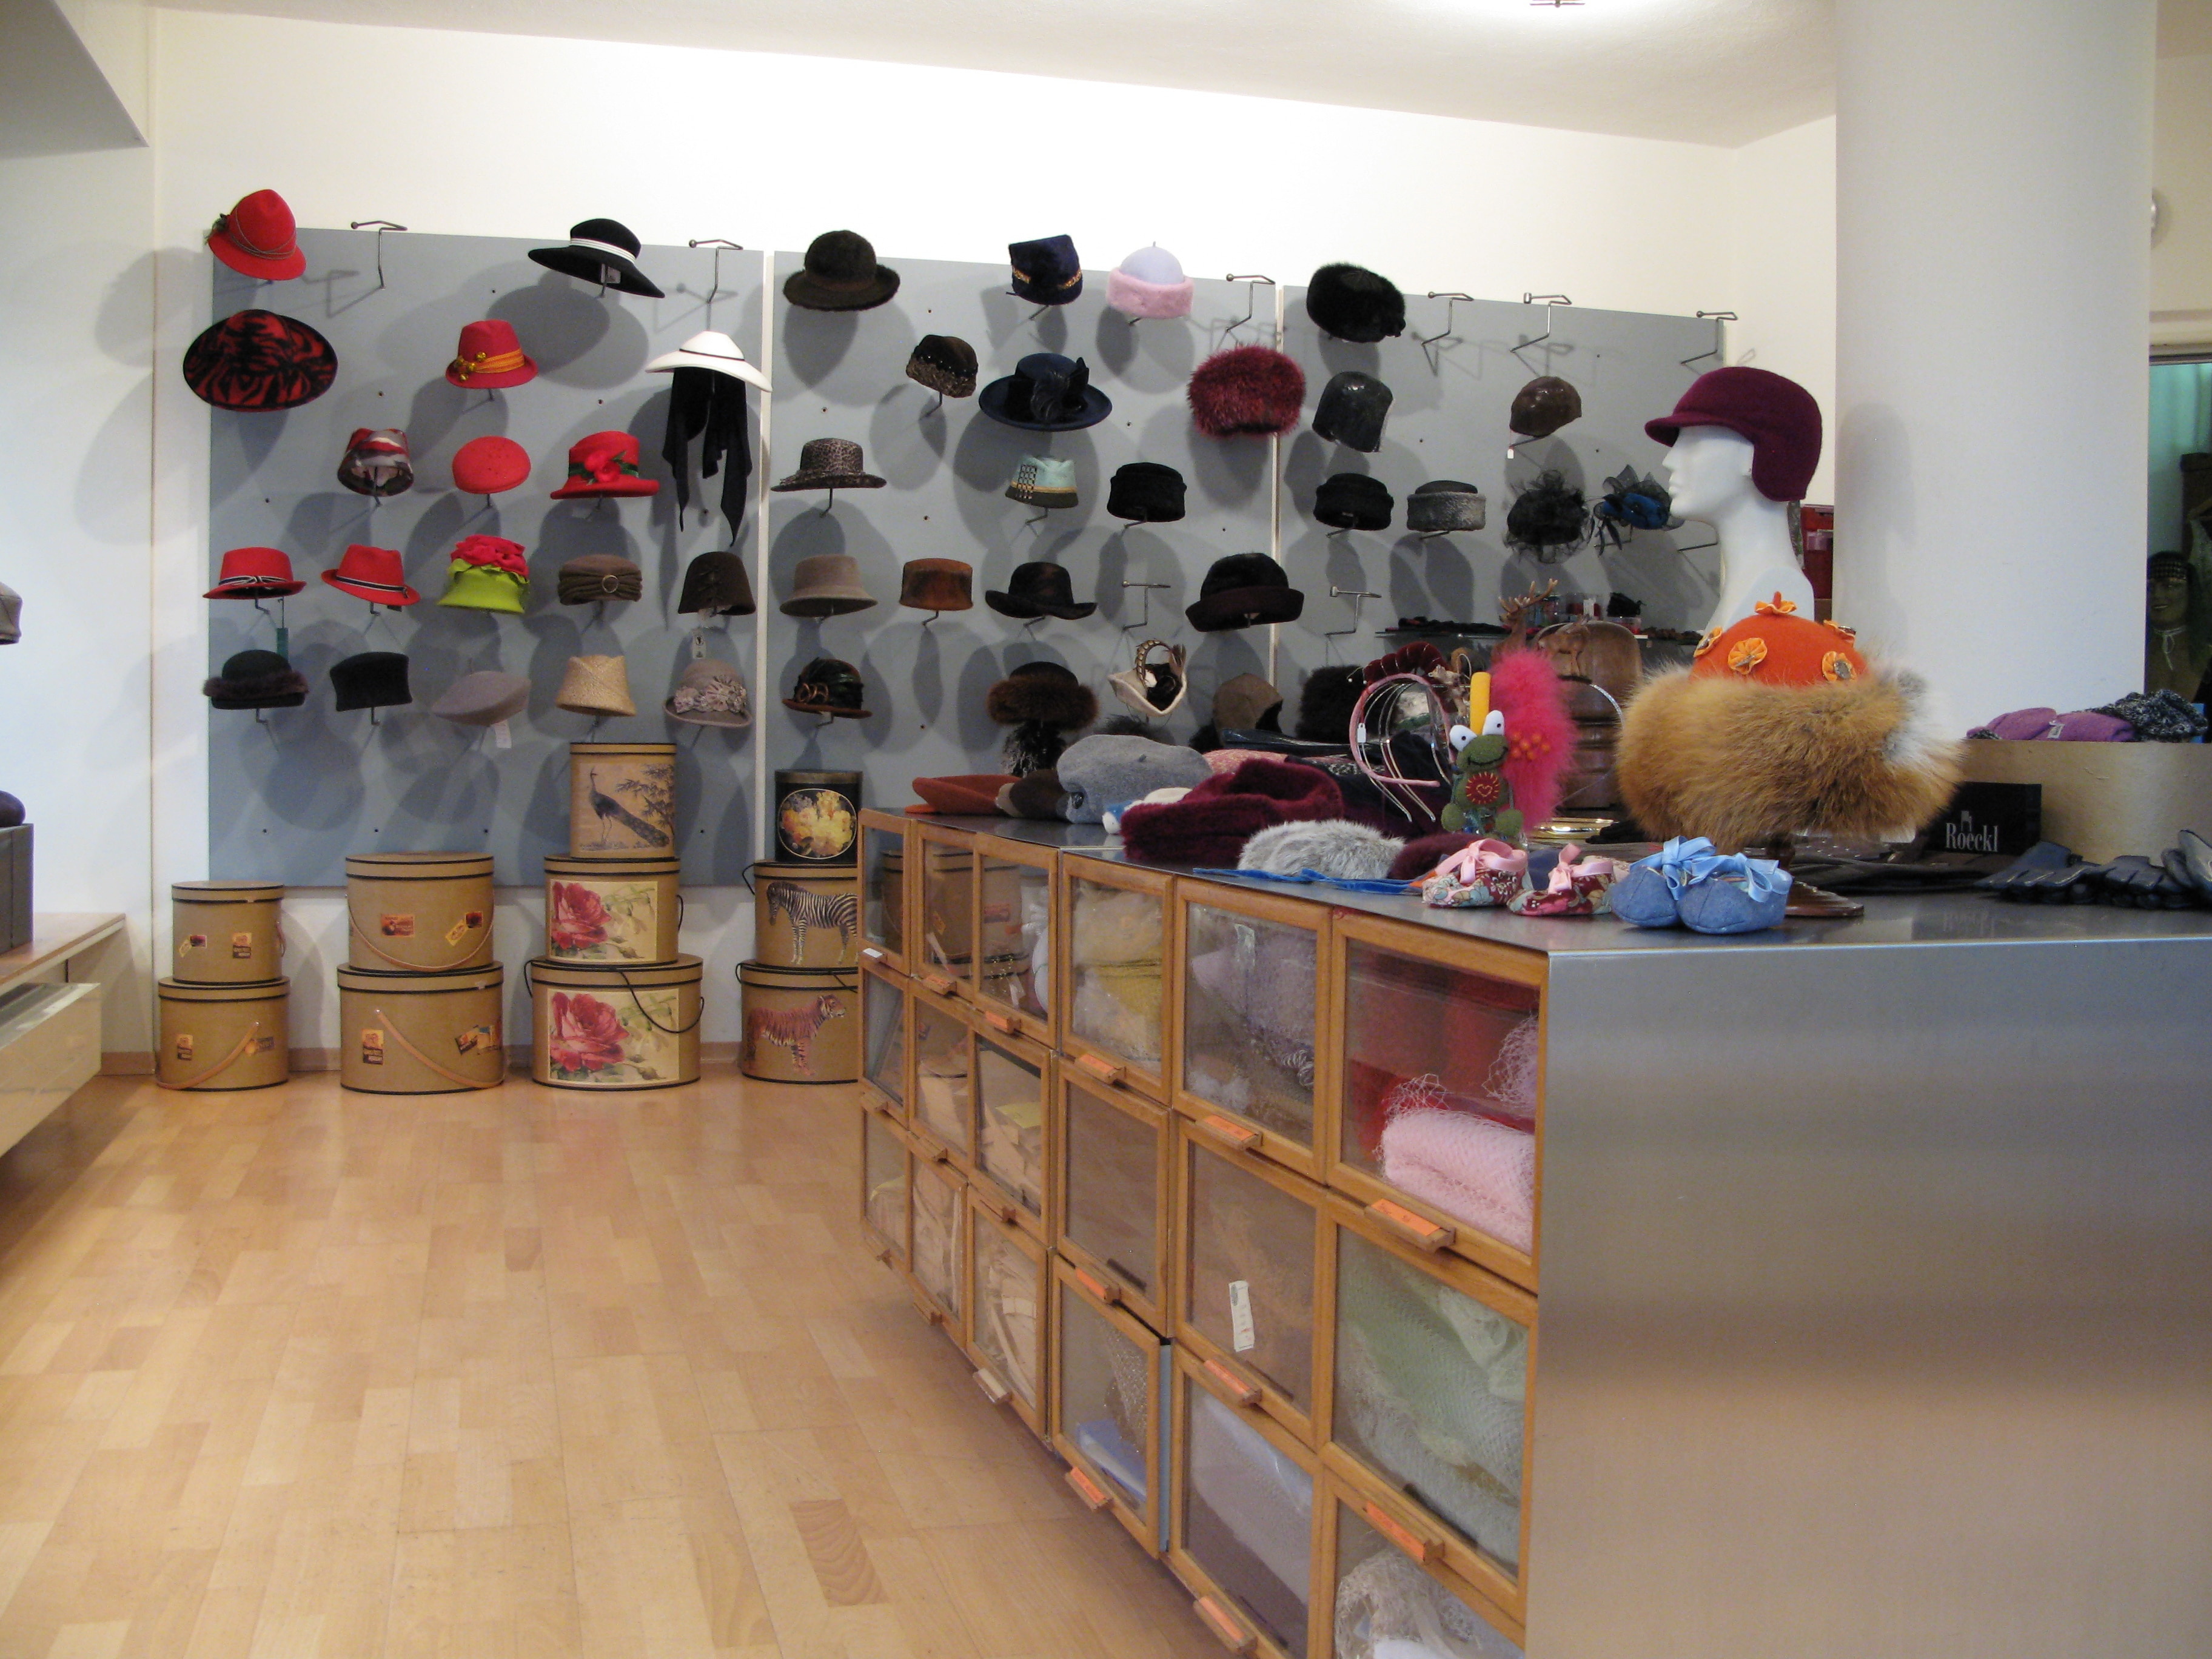 The Caroline boutique is located at Moosstrasse 1 in Lucerne.